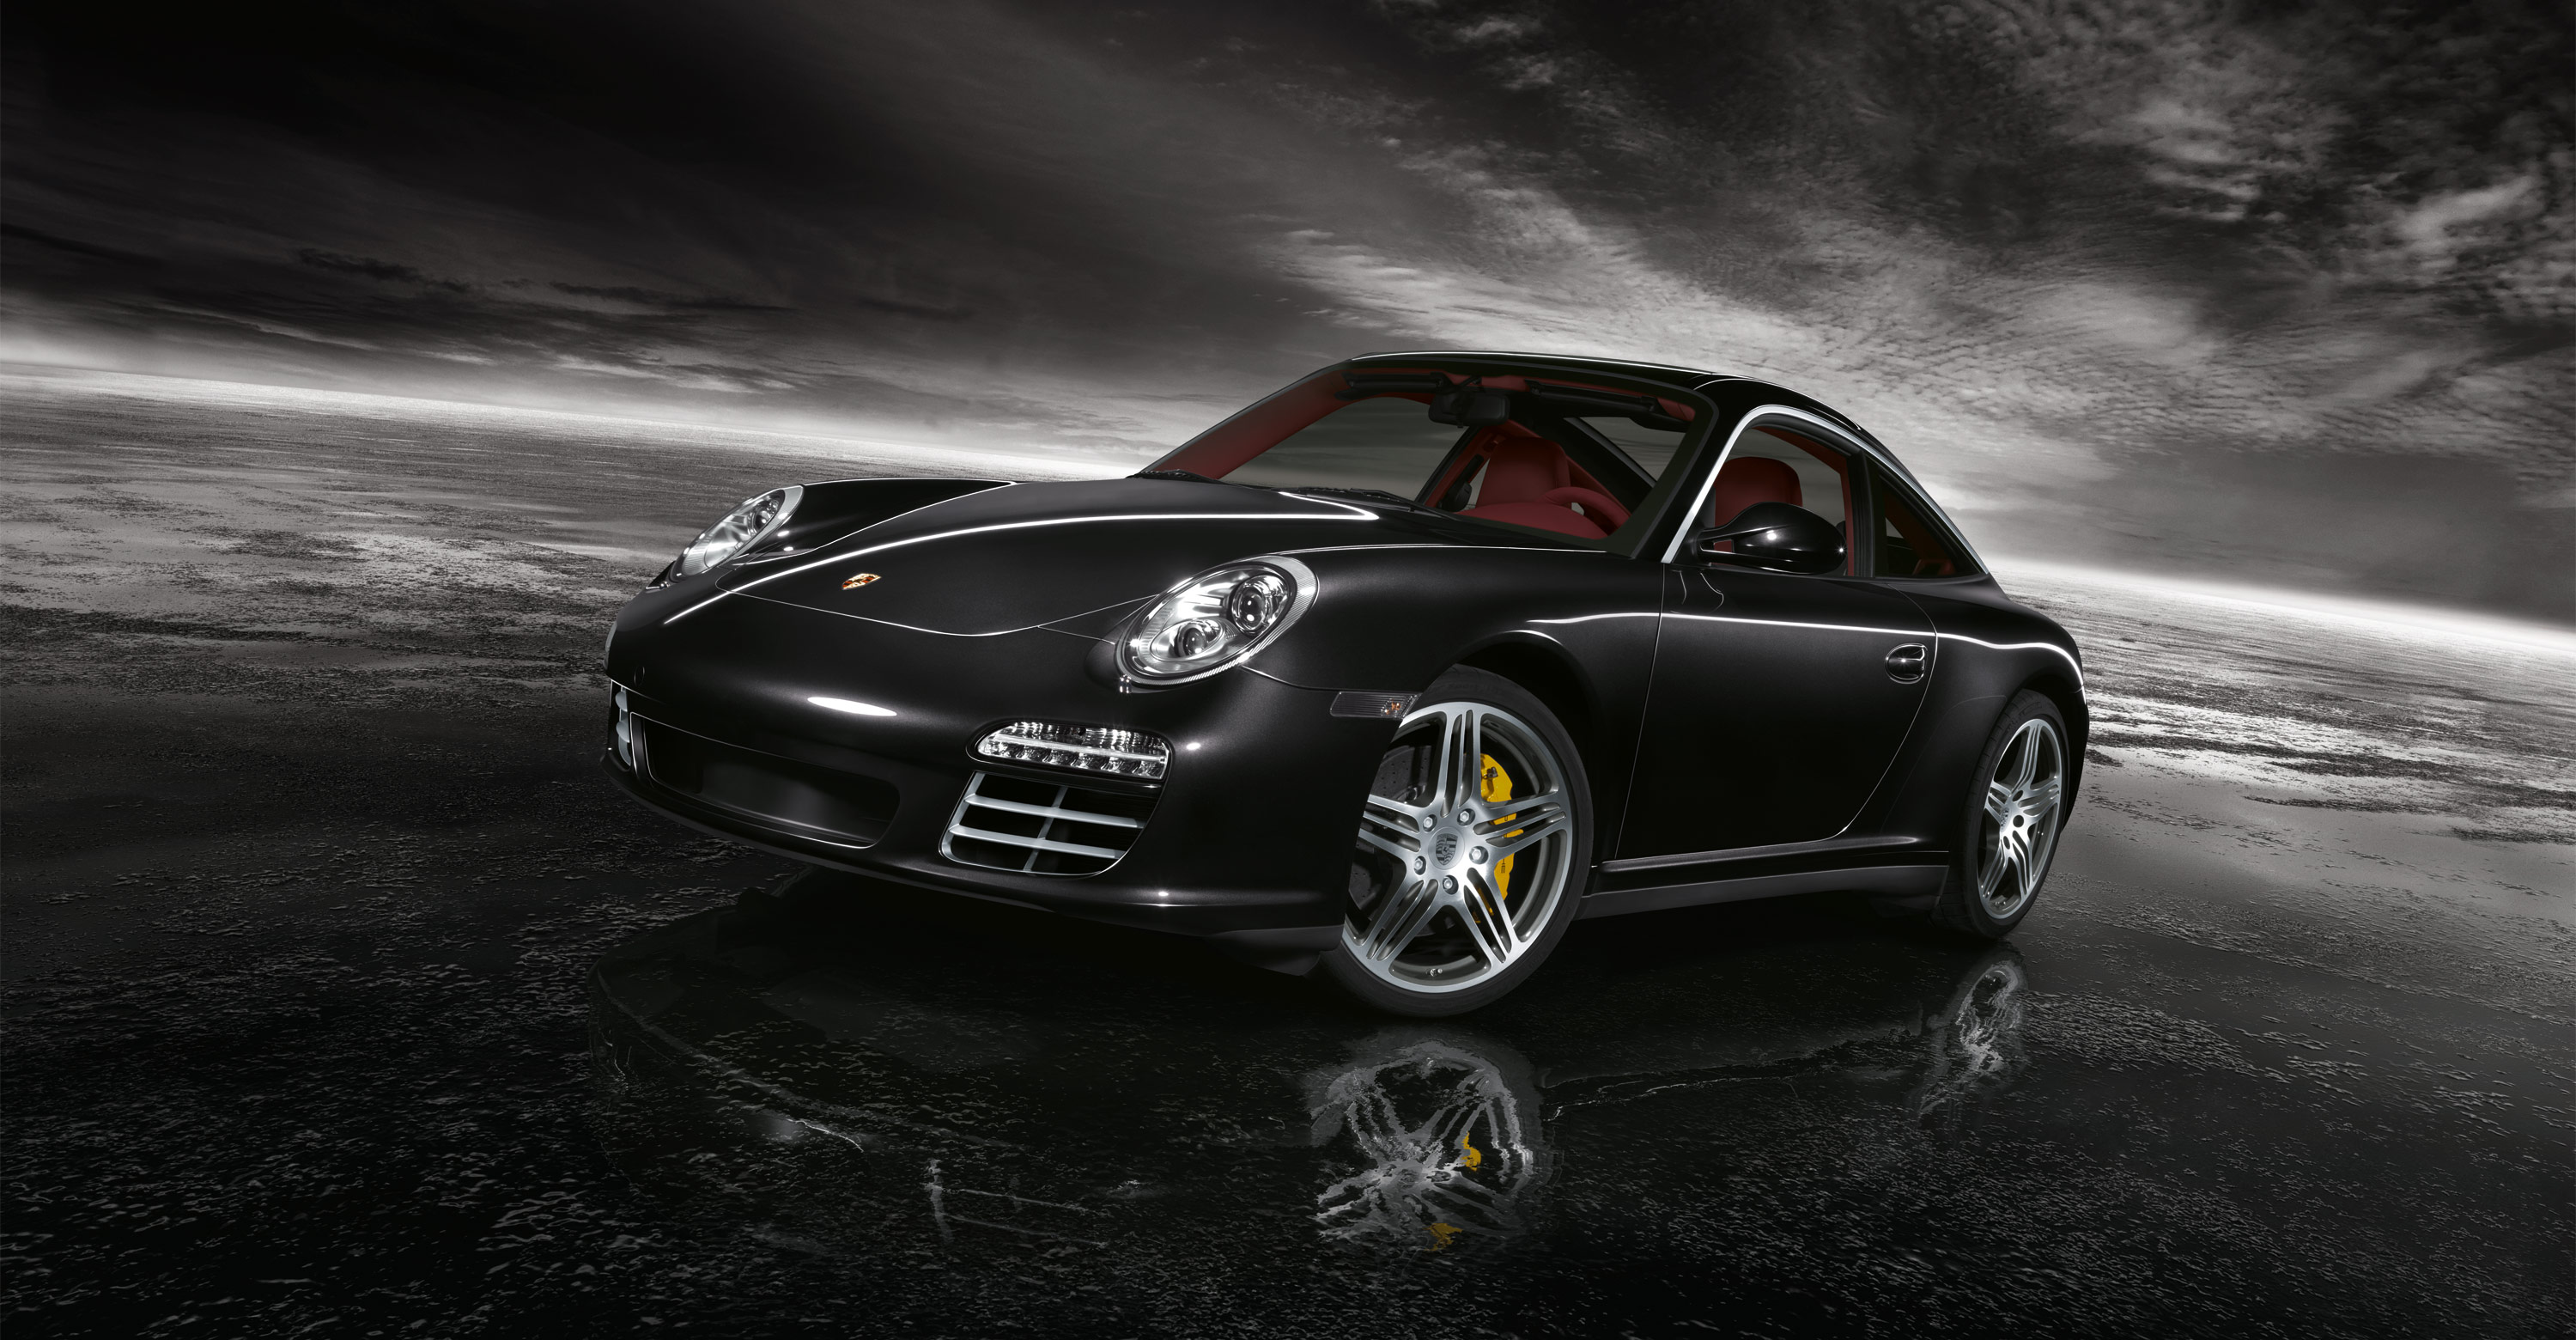 black porsche wallpaper Gallery 58 images 3000x1560